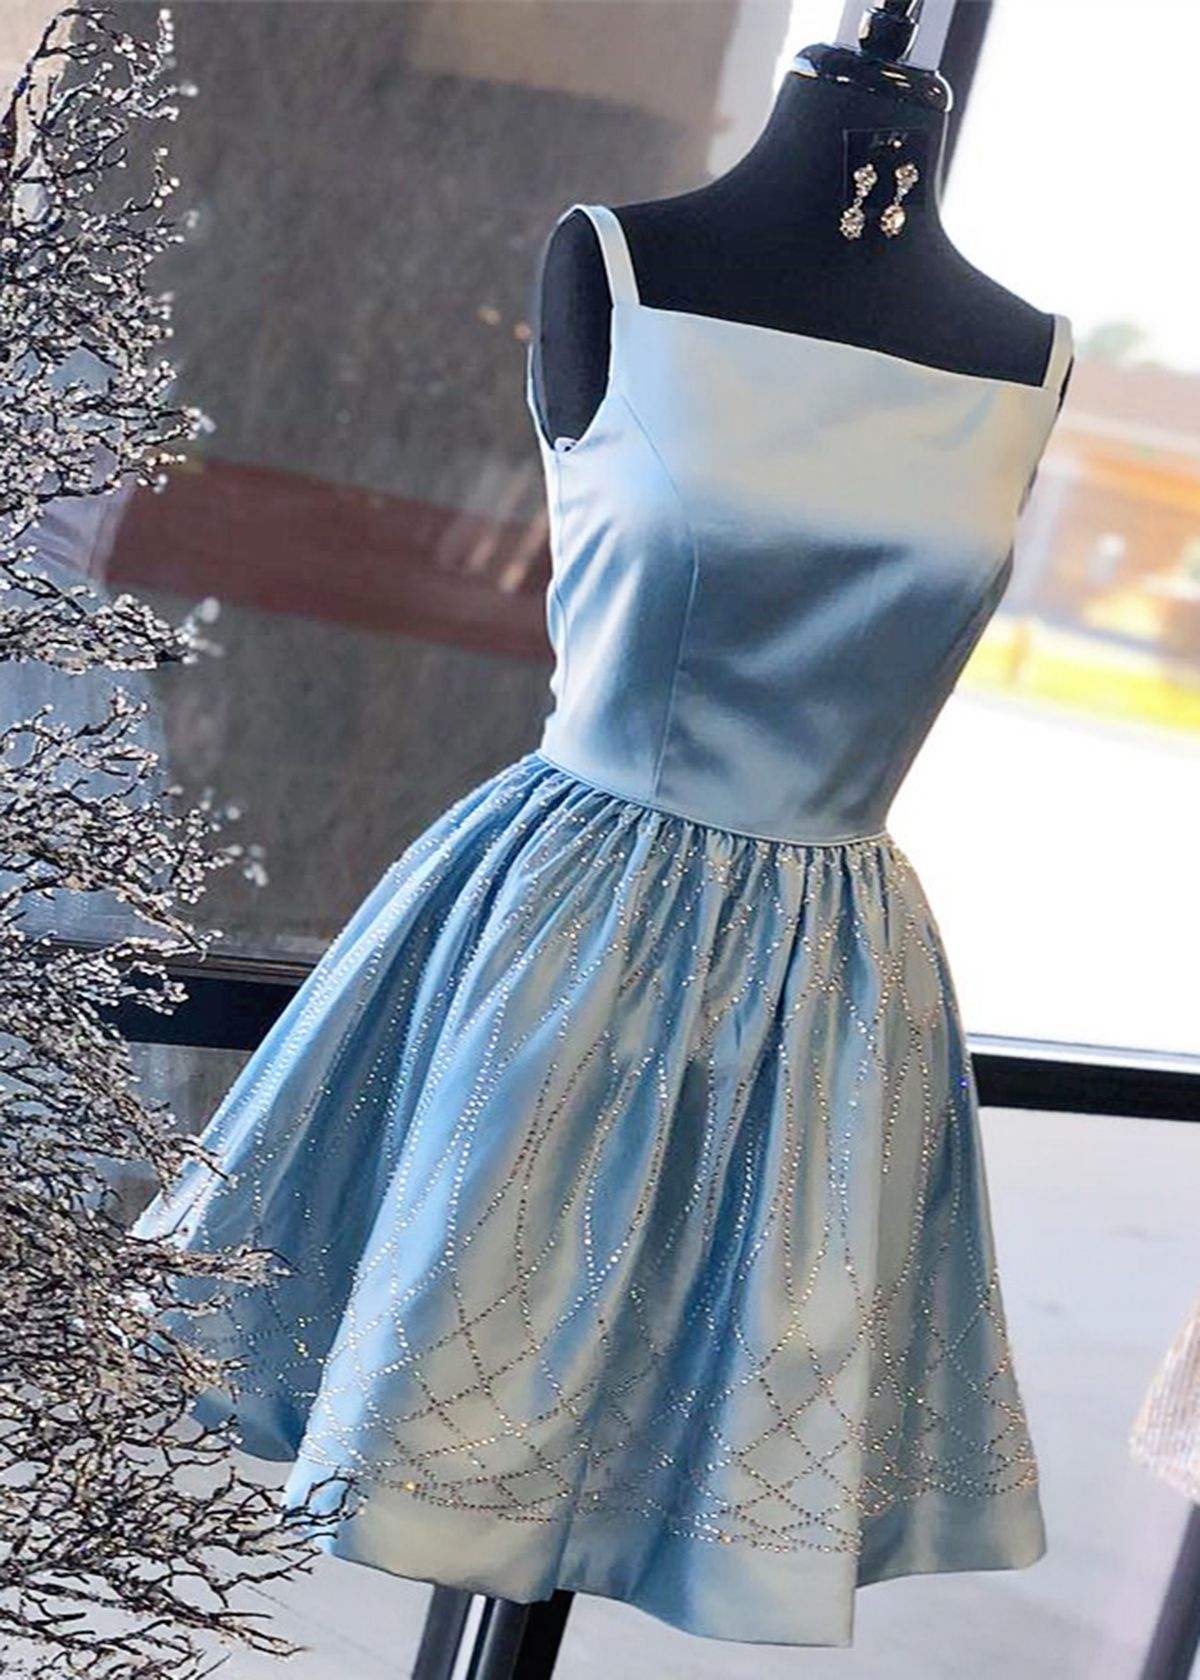 4994470a081 Handmade+item Materials +Satin Made+to+order Color Refer+to+image  Processing+time 15-25+business+days Delivery+date 5-10+business+days Dress+code E0125  ...